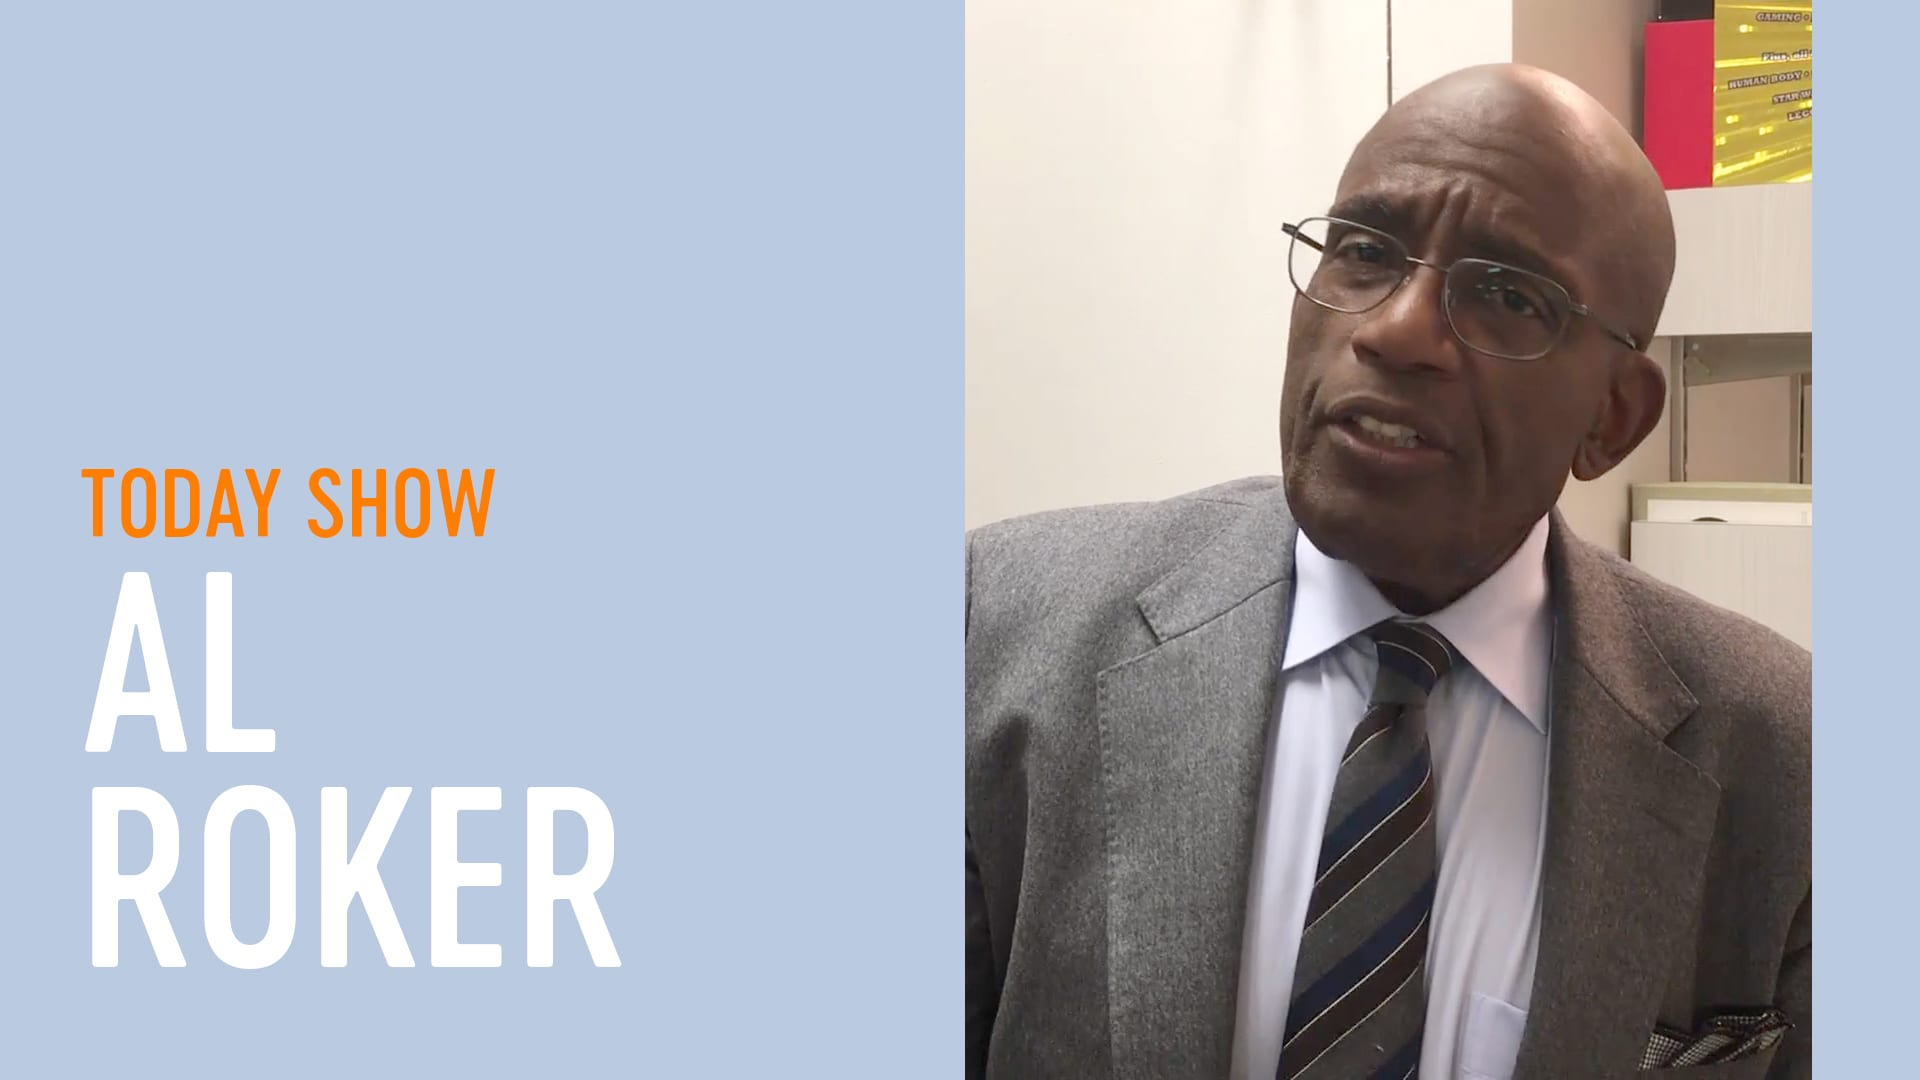 My Worst Job Interview | Al Roker